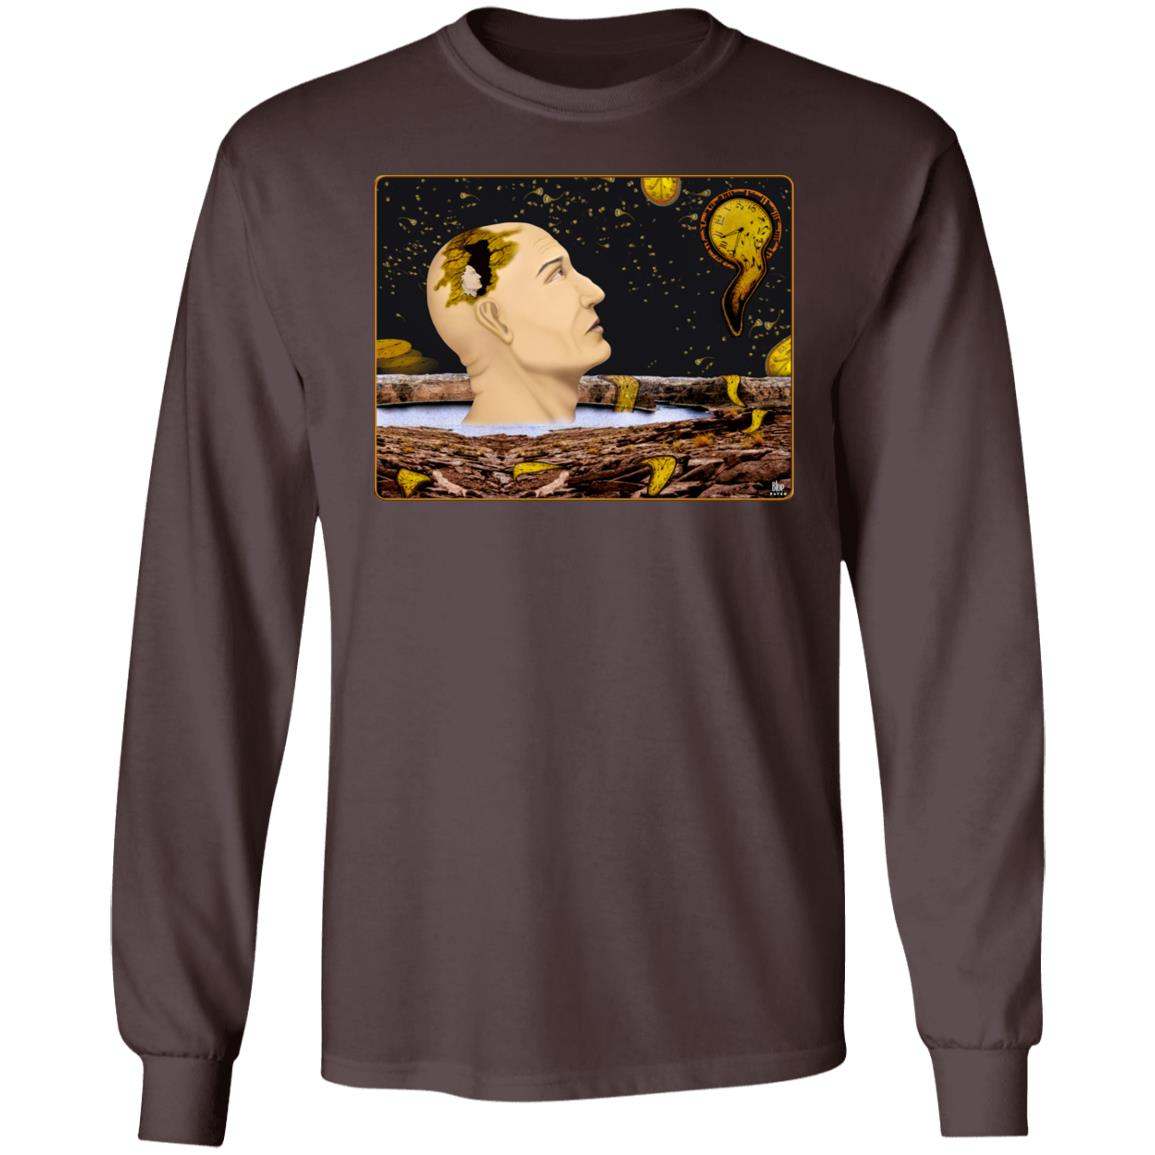 Earth Time Running Out – Men's Long Sleeve T-Shirt